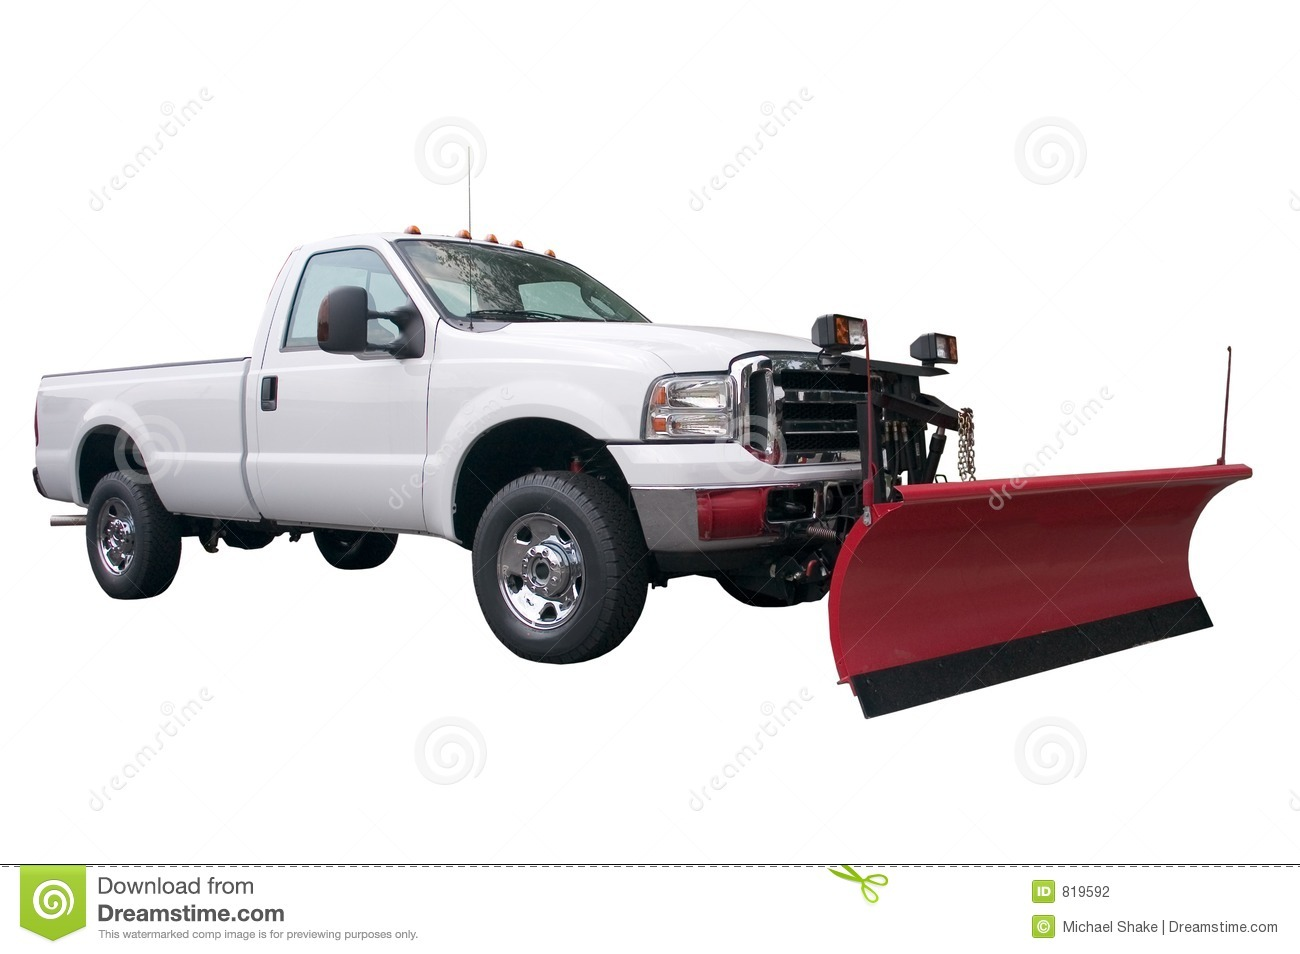 brand new snow plow truck isolated on a white background.More of my ...